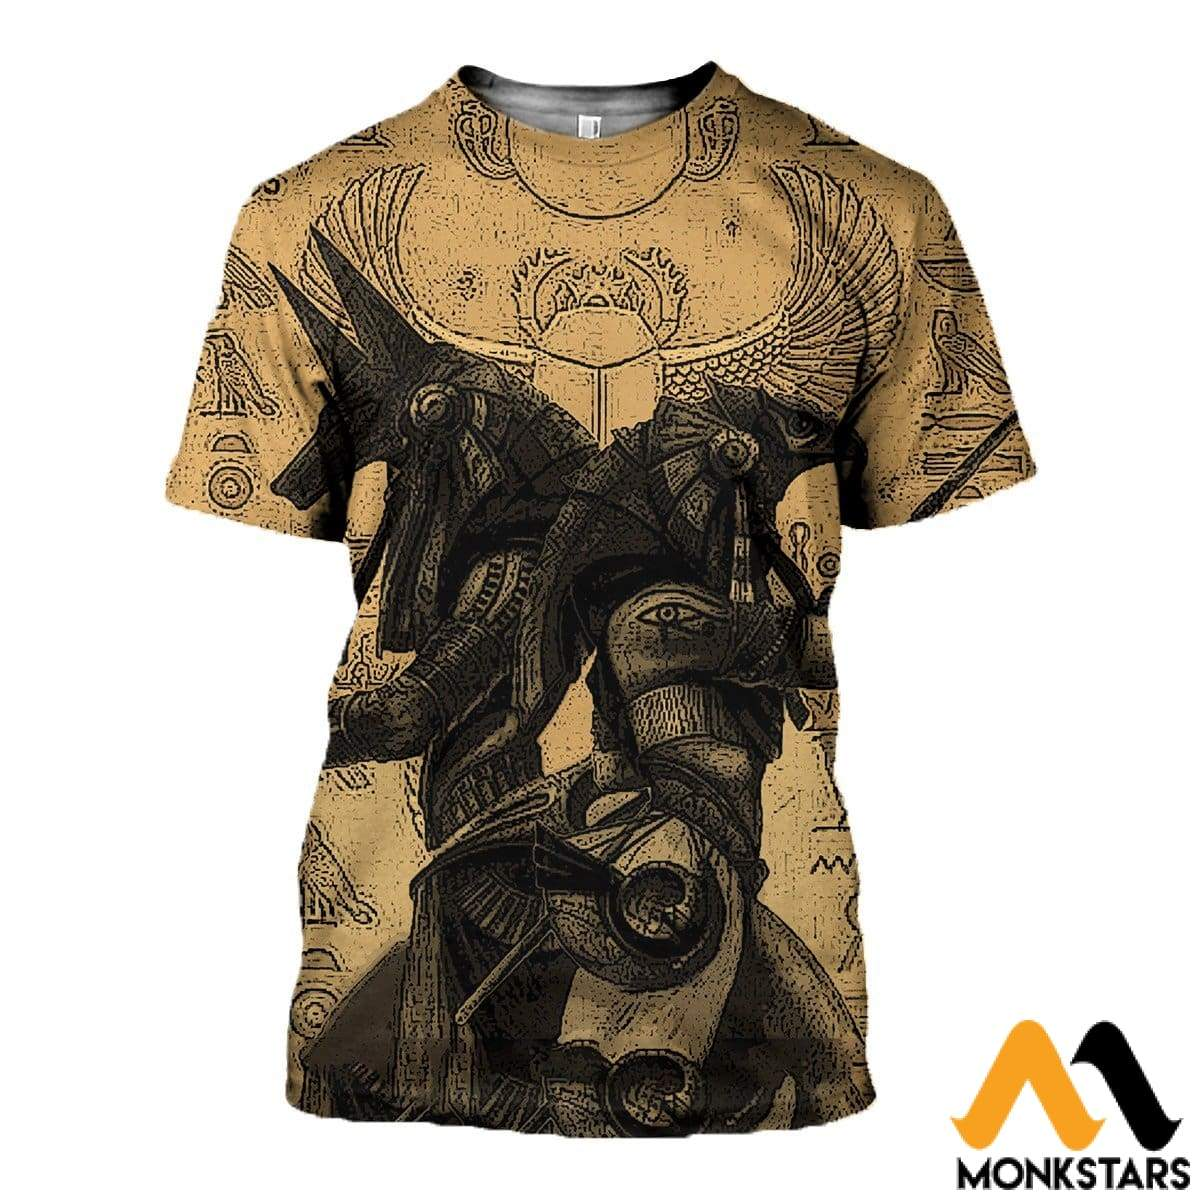 a88814197f4f9 3D All Over Printed Anubis And Osiris Shirts Shorts T-Shirt / Xs Clothes